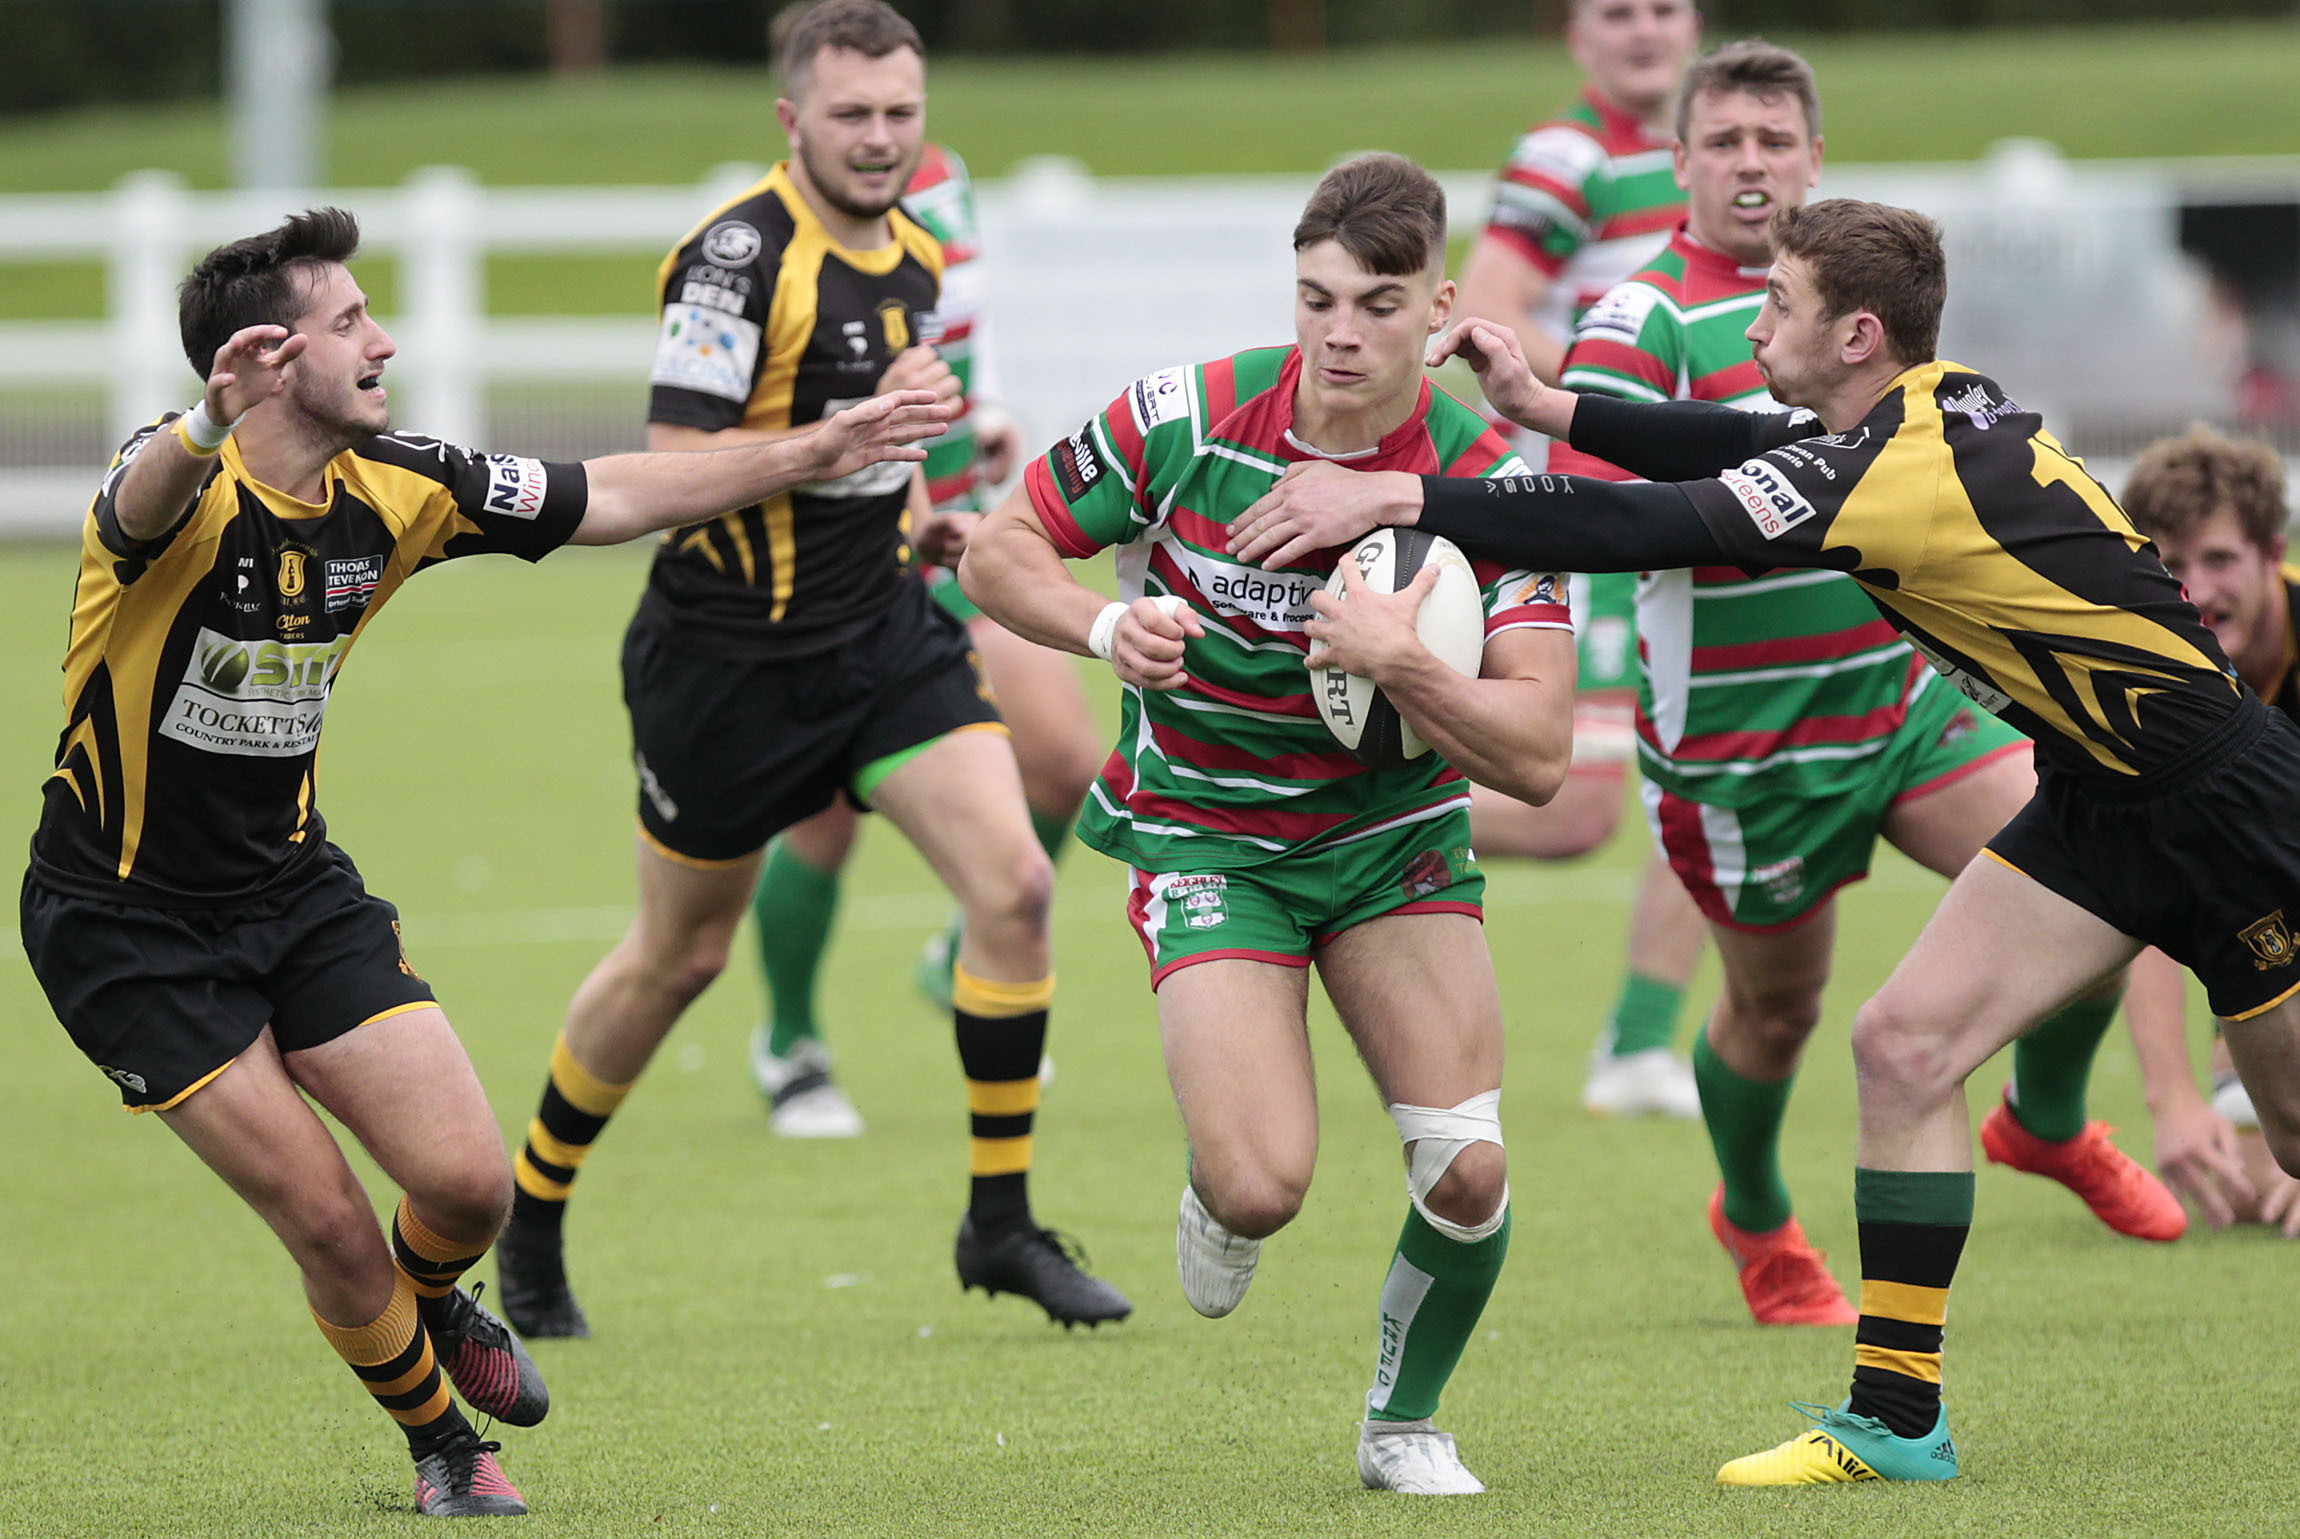 Josh Slingsby sets off on a run in his Keighley side's 29-22 win over Guisborough. Picture: Charlie Perry